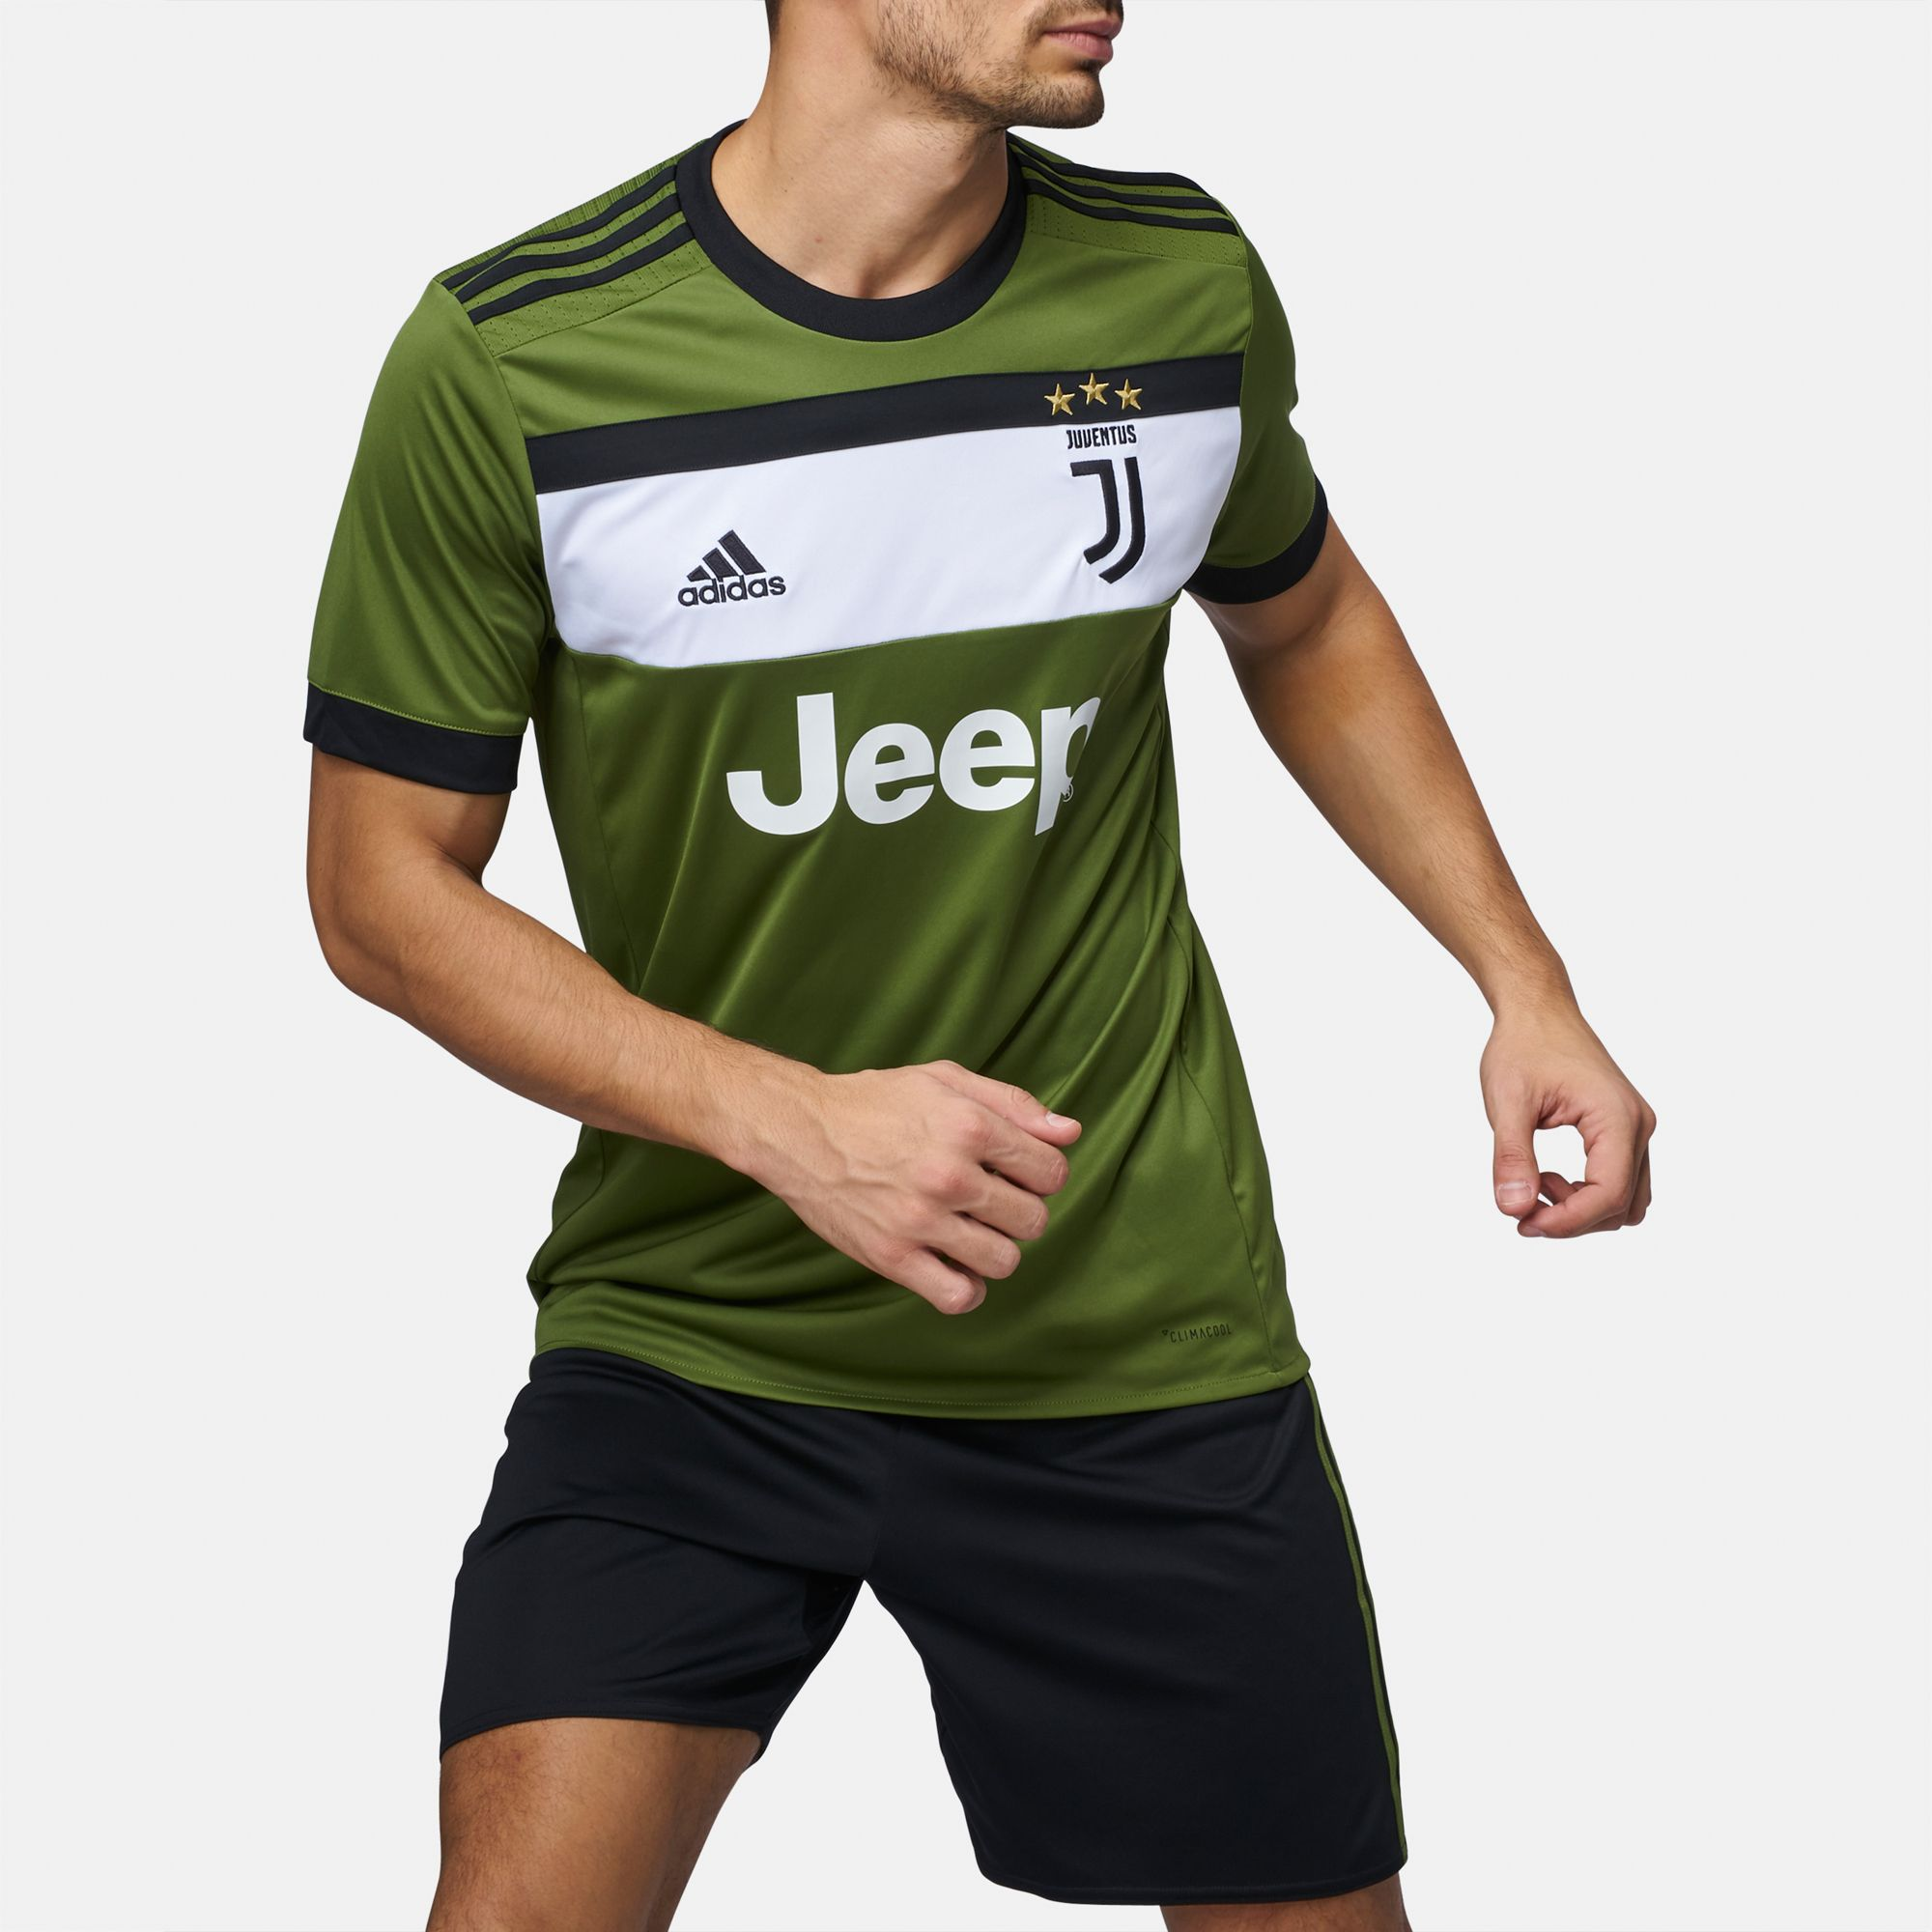 adae48b9b49 Shop Green adidas 2017 18 Juventus Replica Third Jersey for Mens by ...